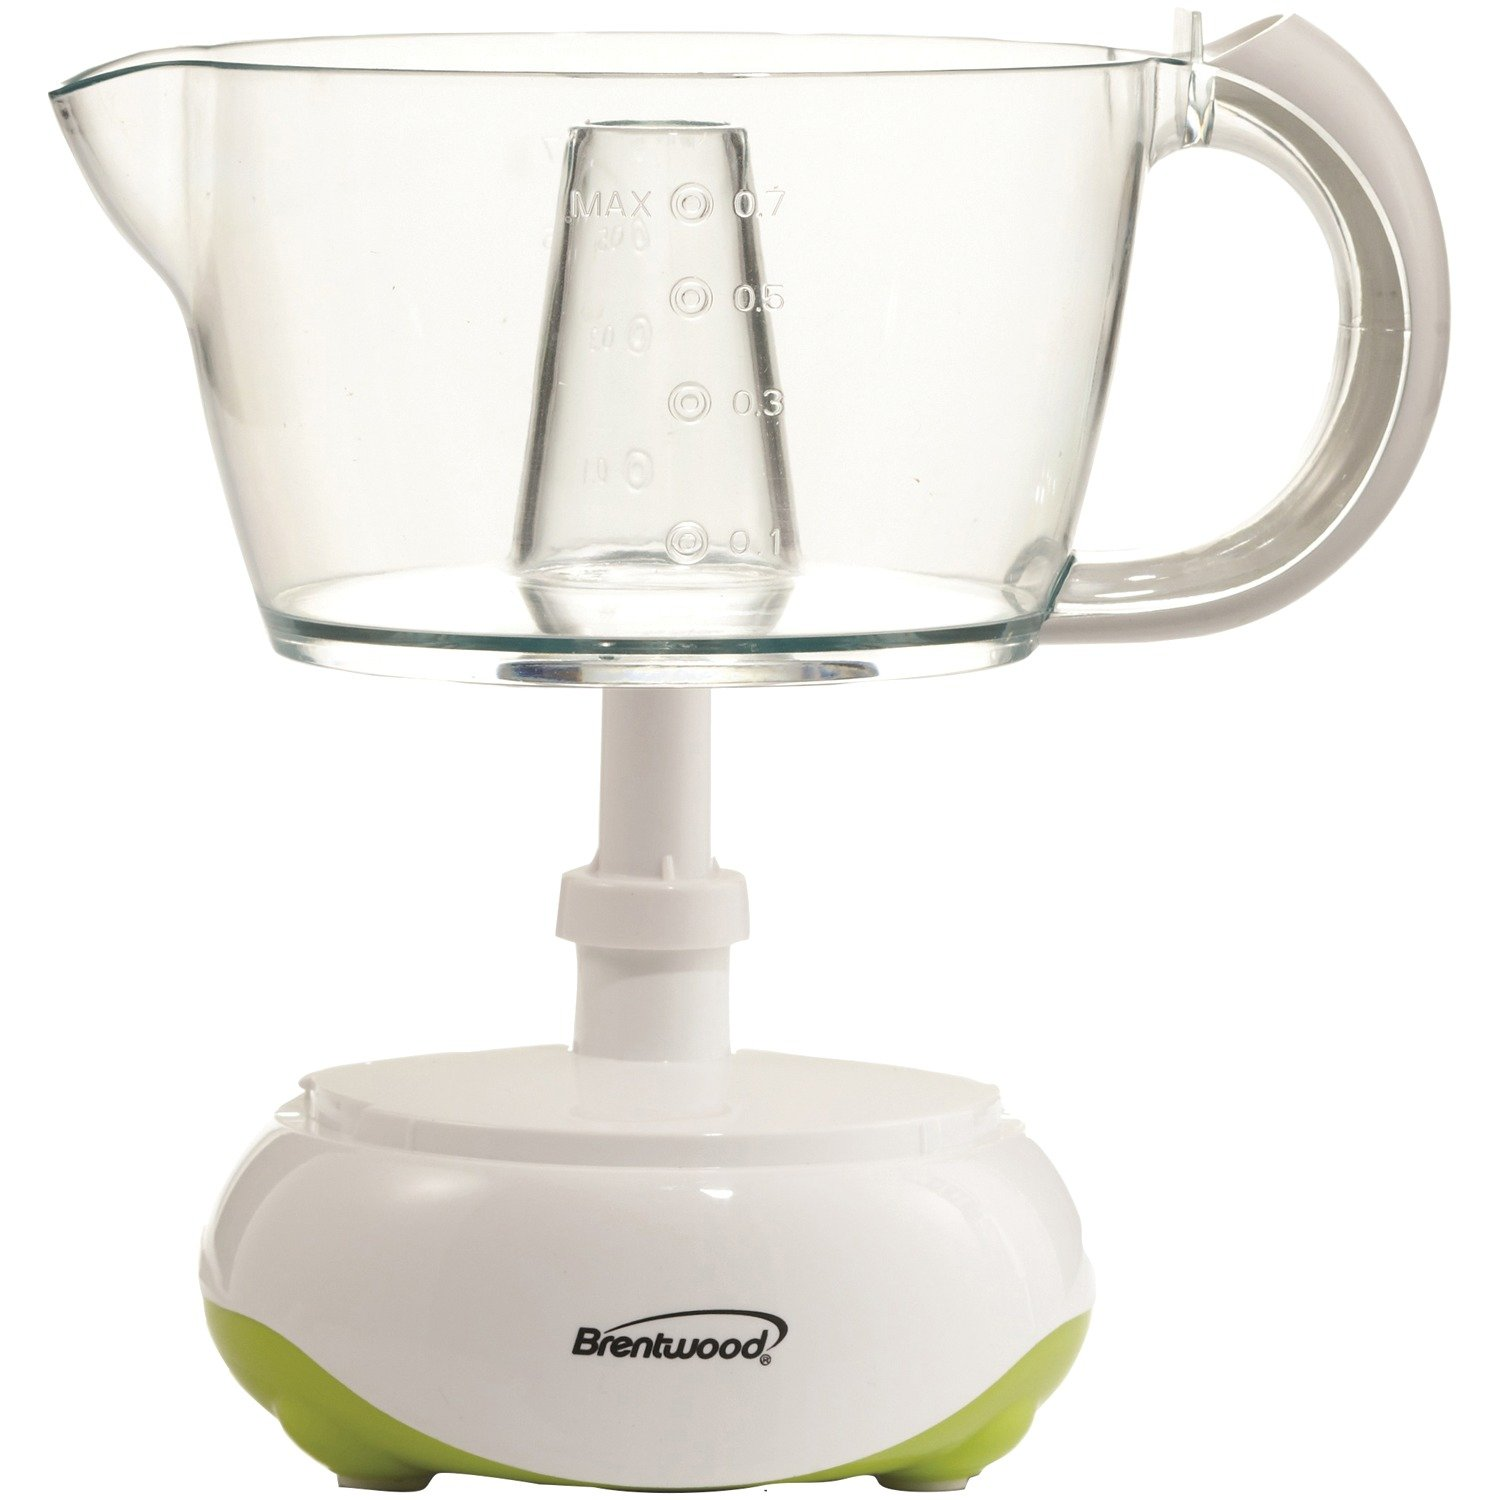 Brentwood  J-15  24oz  Electric  Citrus  Juicer,  White by Brentwood (Image #6)